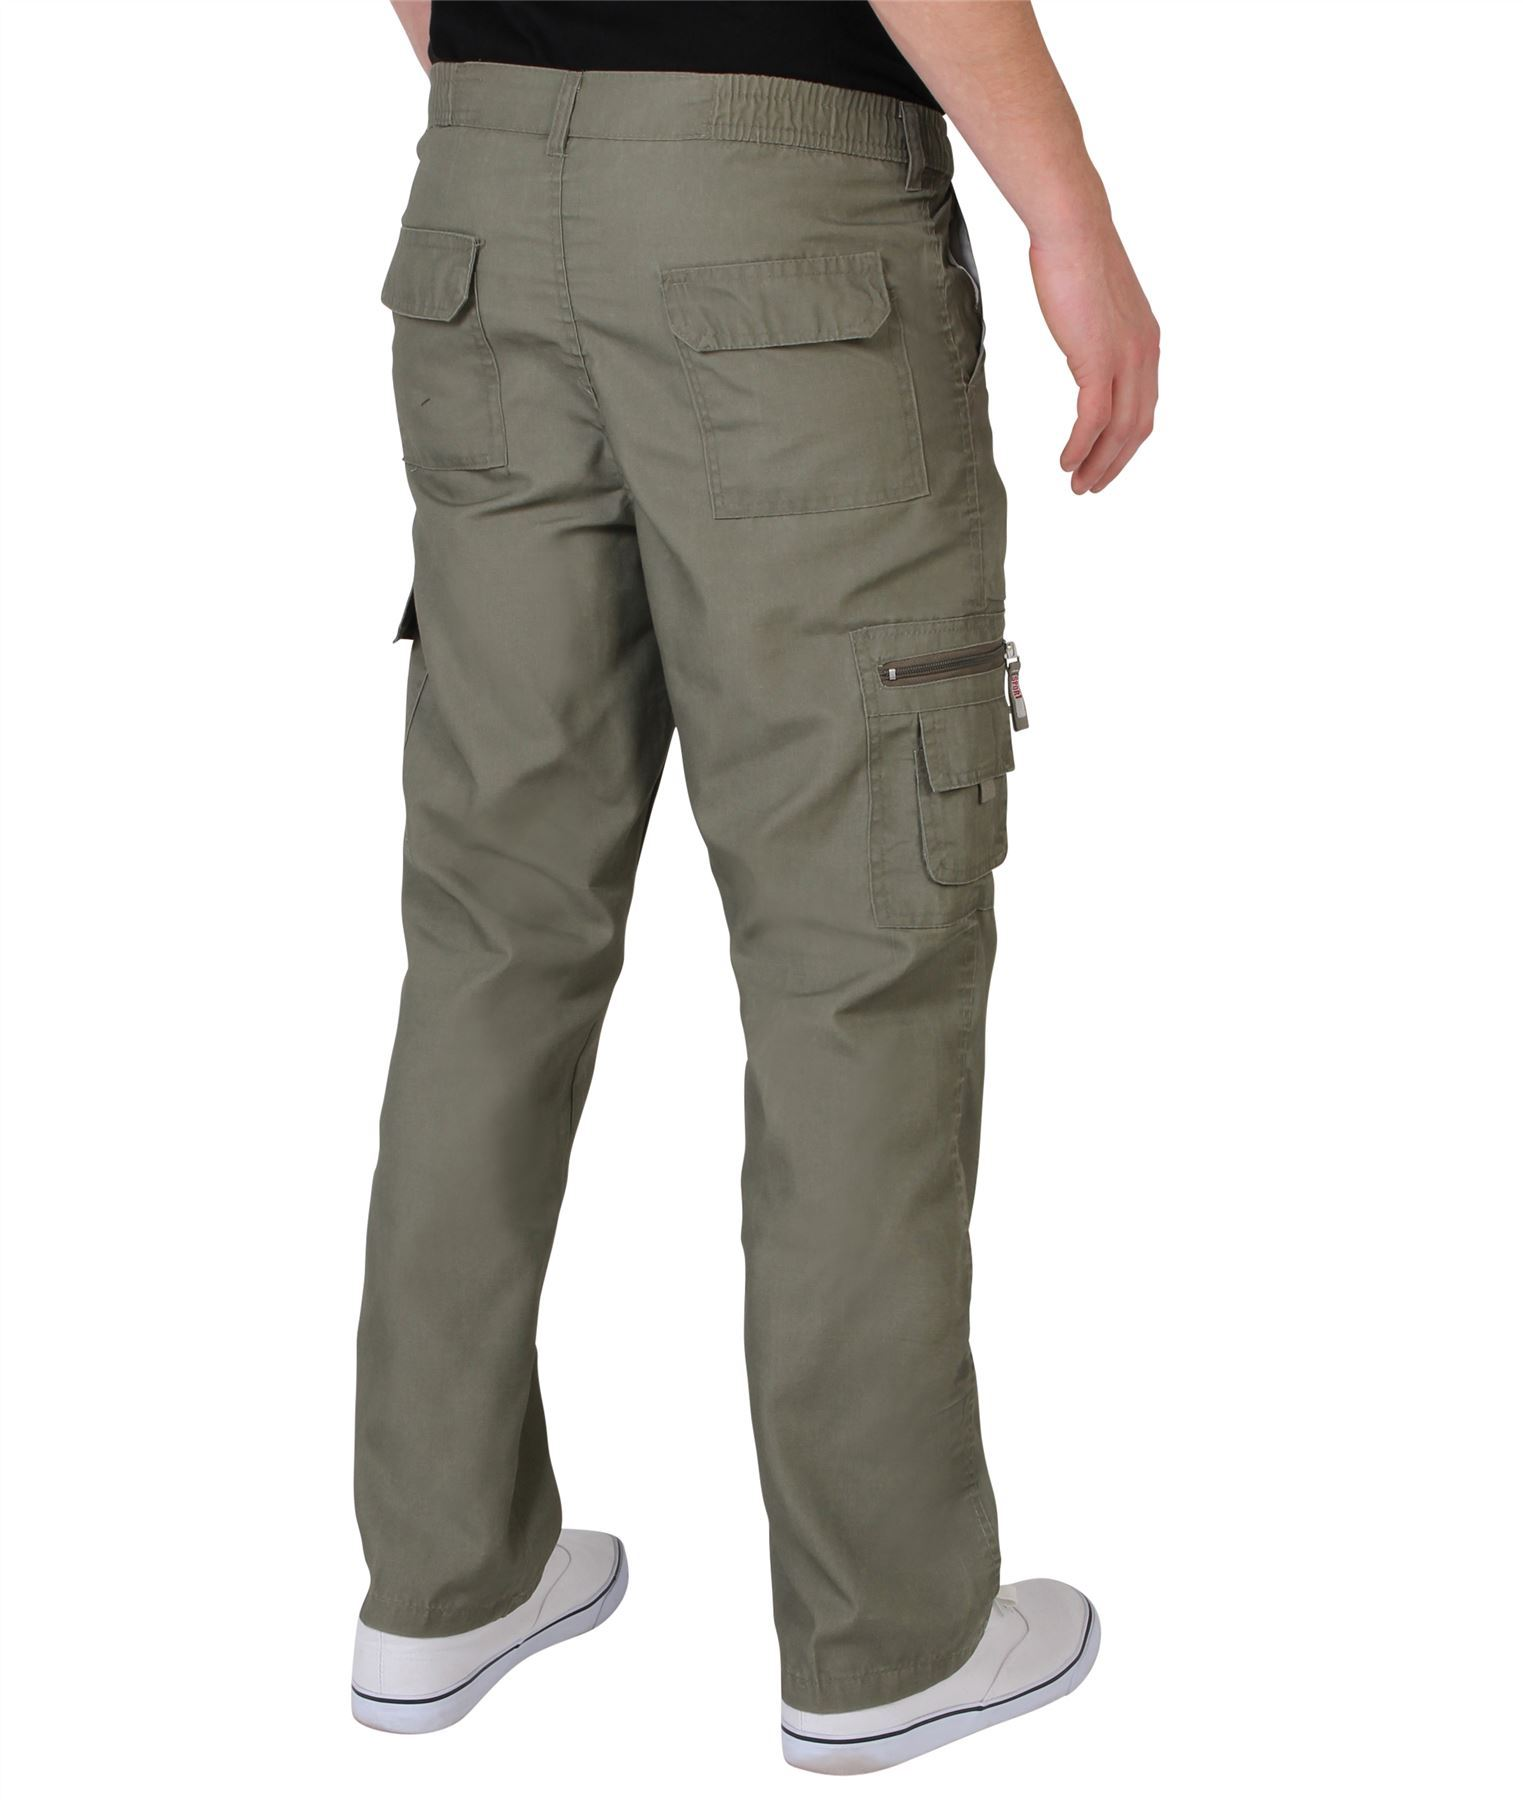 Mens-Army-Cargo-Trousers-Cotton-Combat-Pants-Military-Work-Chinos-Casual-Khakis thumbnail 22